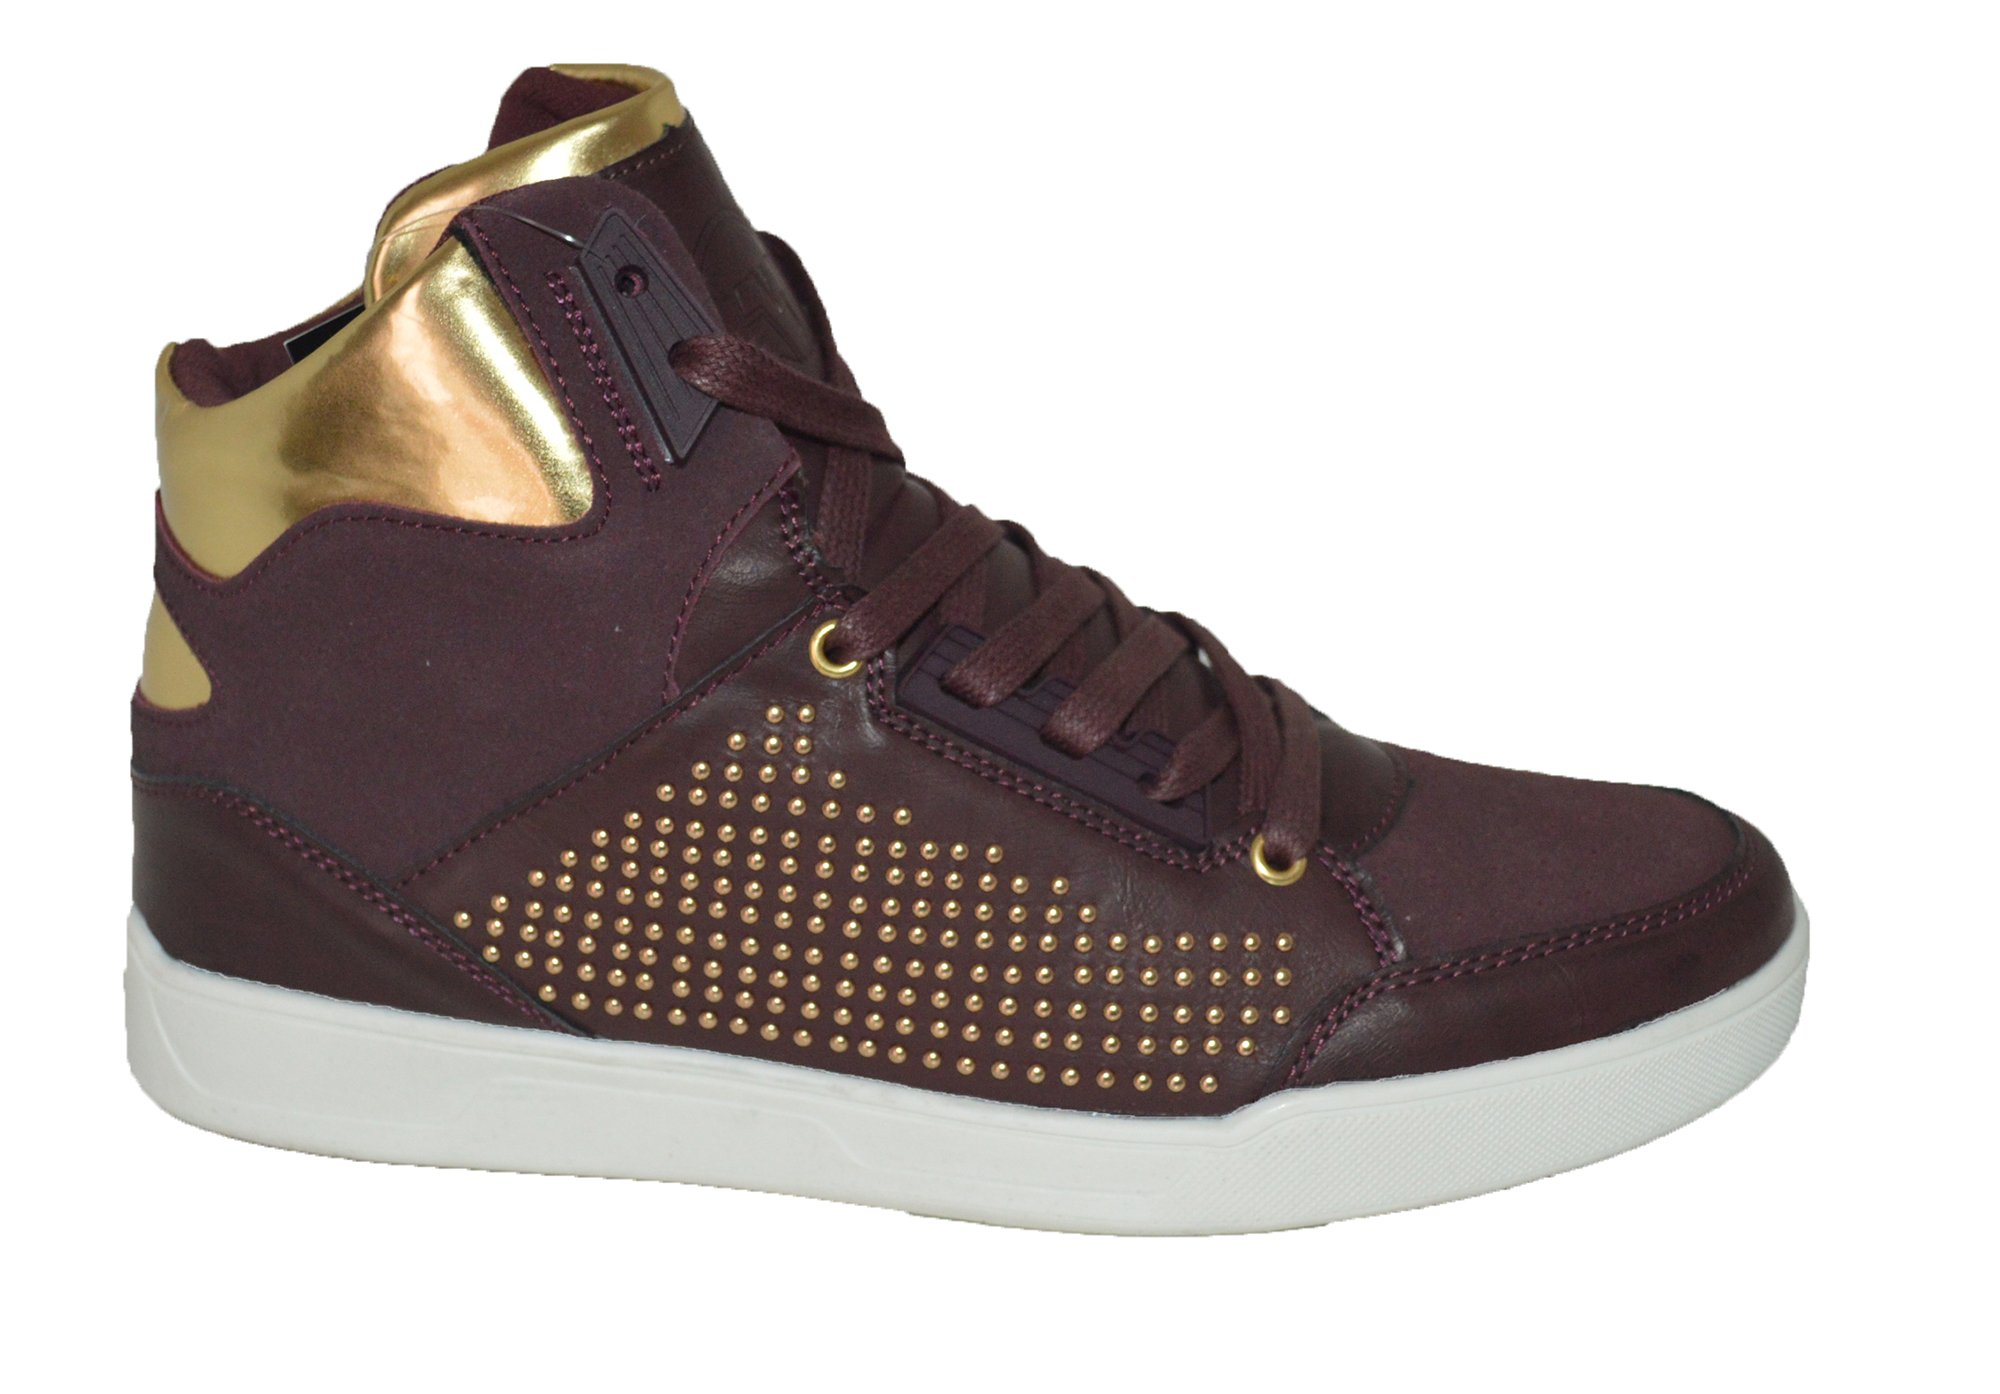 Mecca ME-8060 EAN Men's Mixed Media Studded Lace up High Top Sneakers.,Wine,10.5 D(M) US